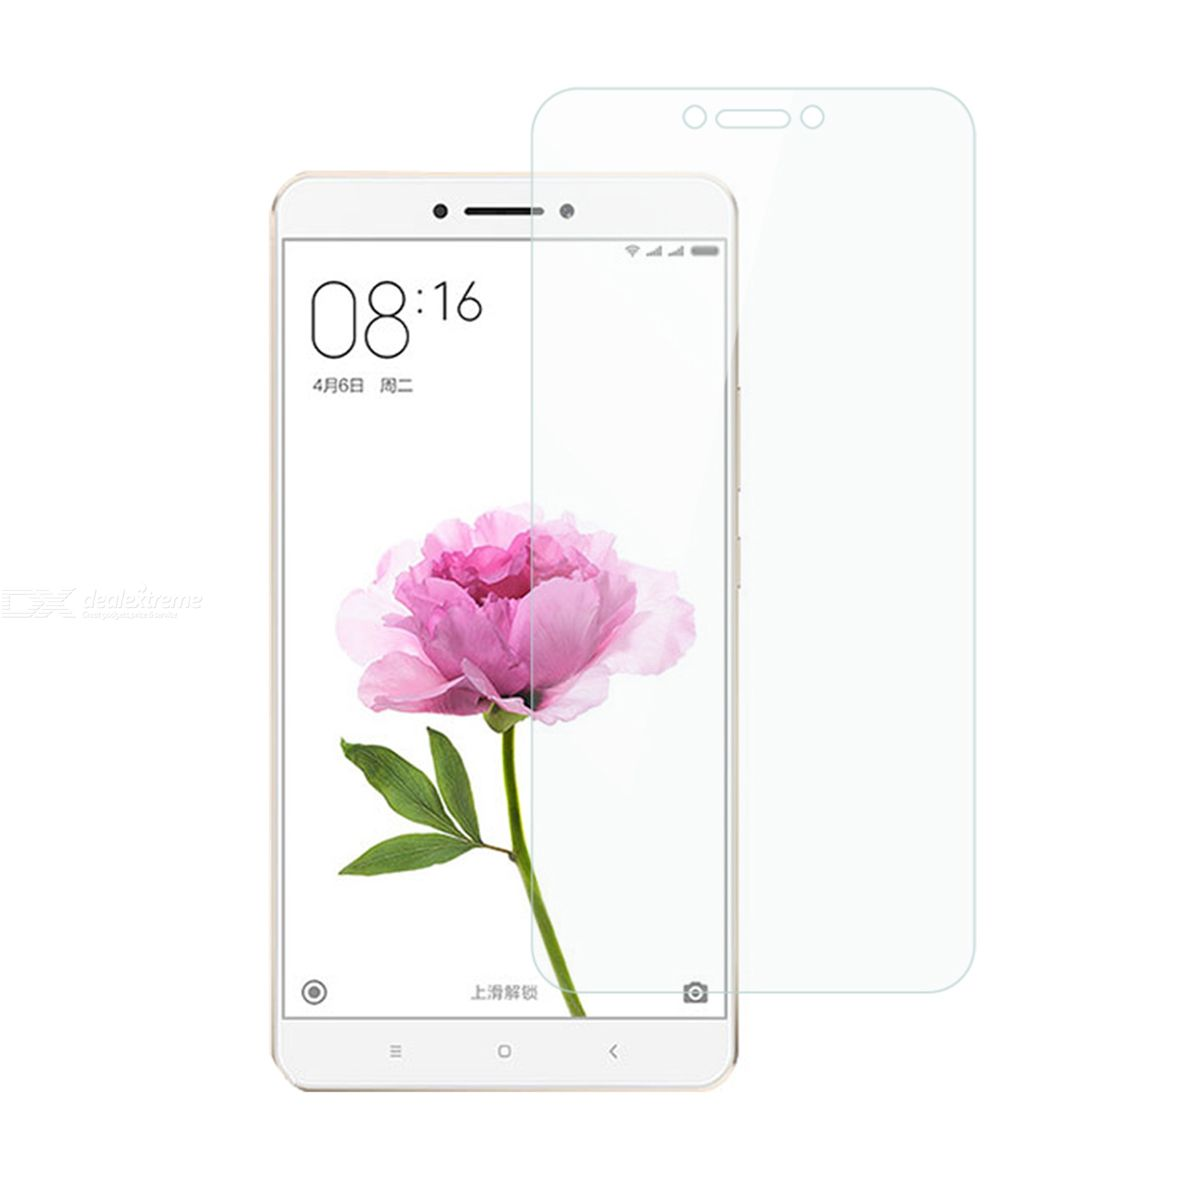 Dayspirit Tempered Glass Screen Protector for Xiaomi Mi Max